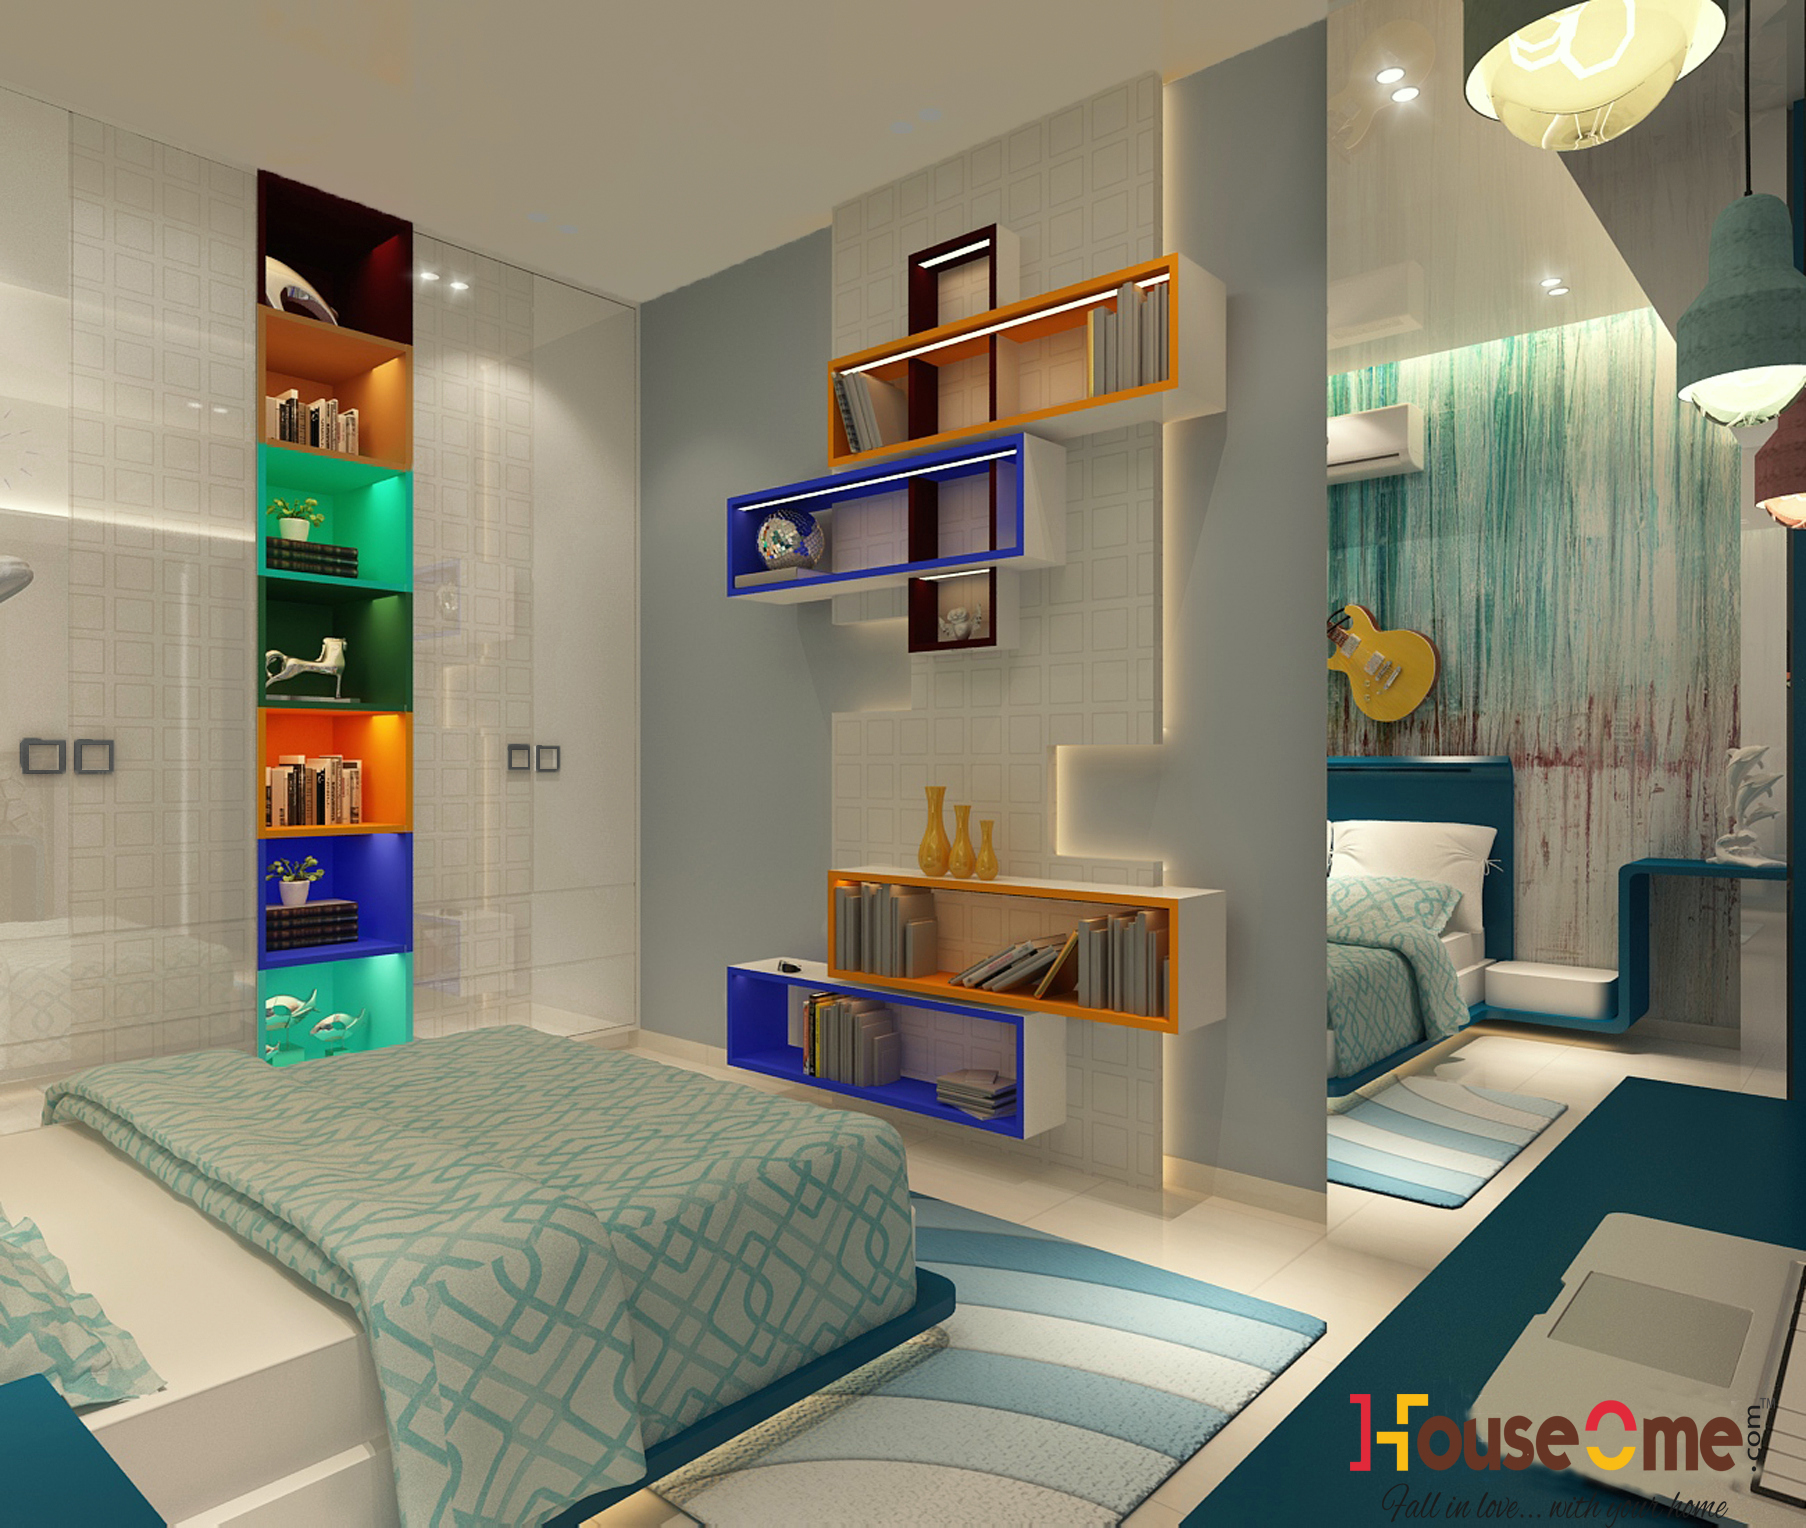 Decorating your childs room is often a tedious task and that is exactly why we are here to help choosing the right colors adding the right amount of